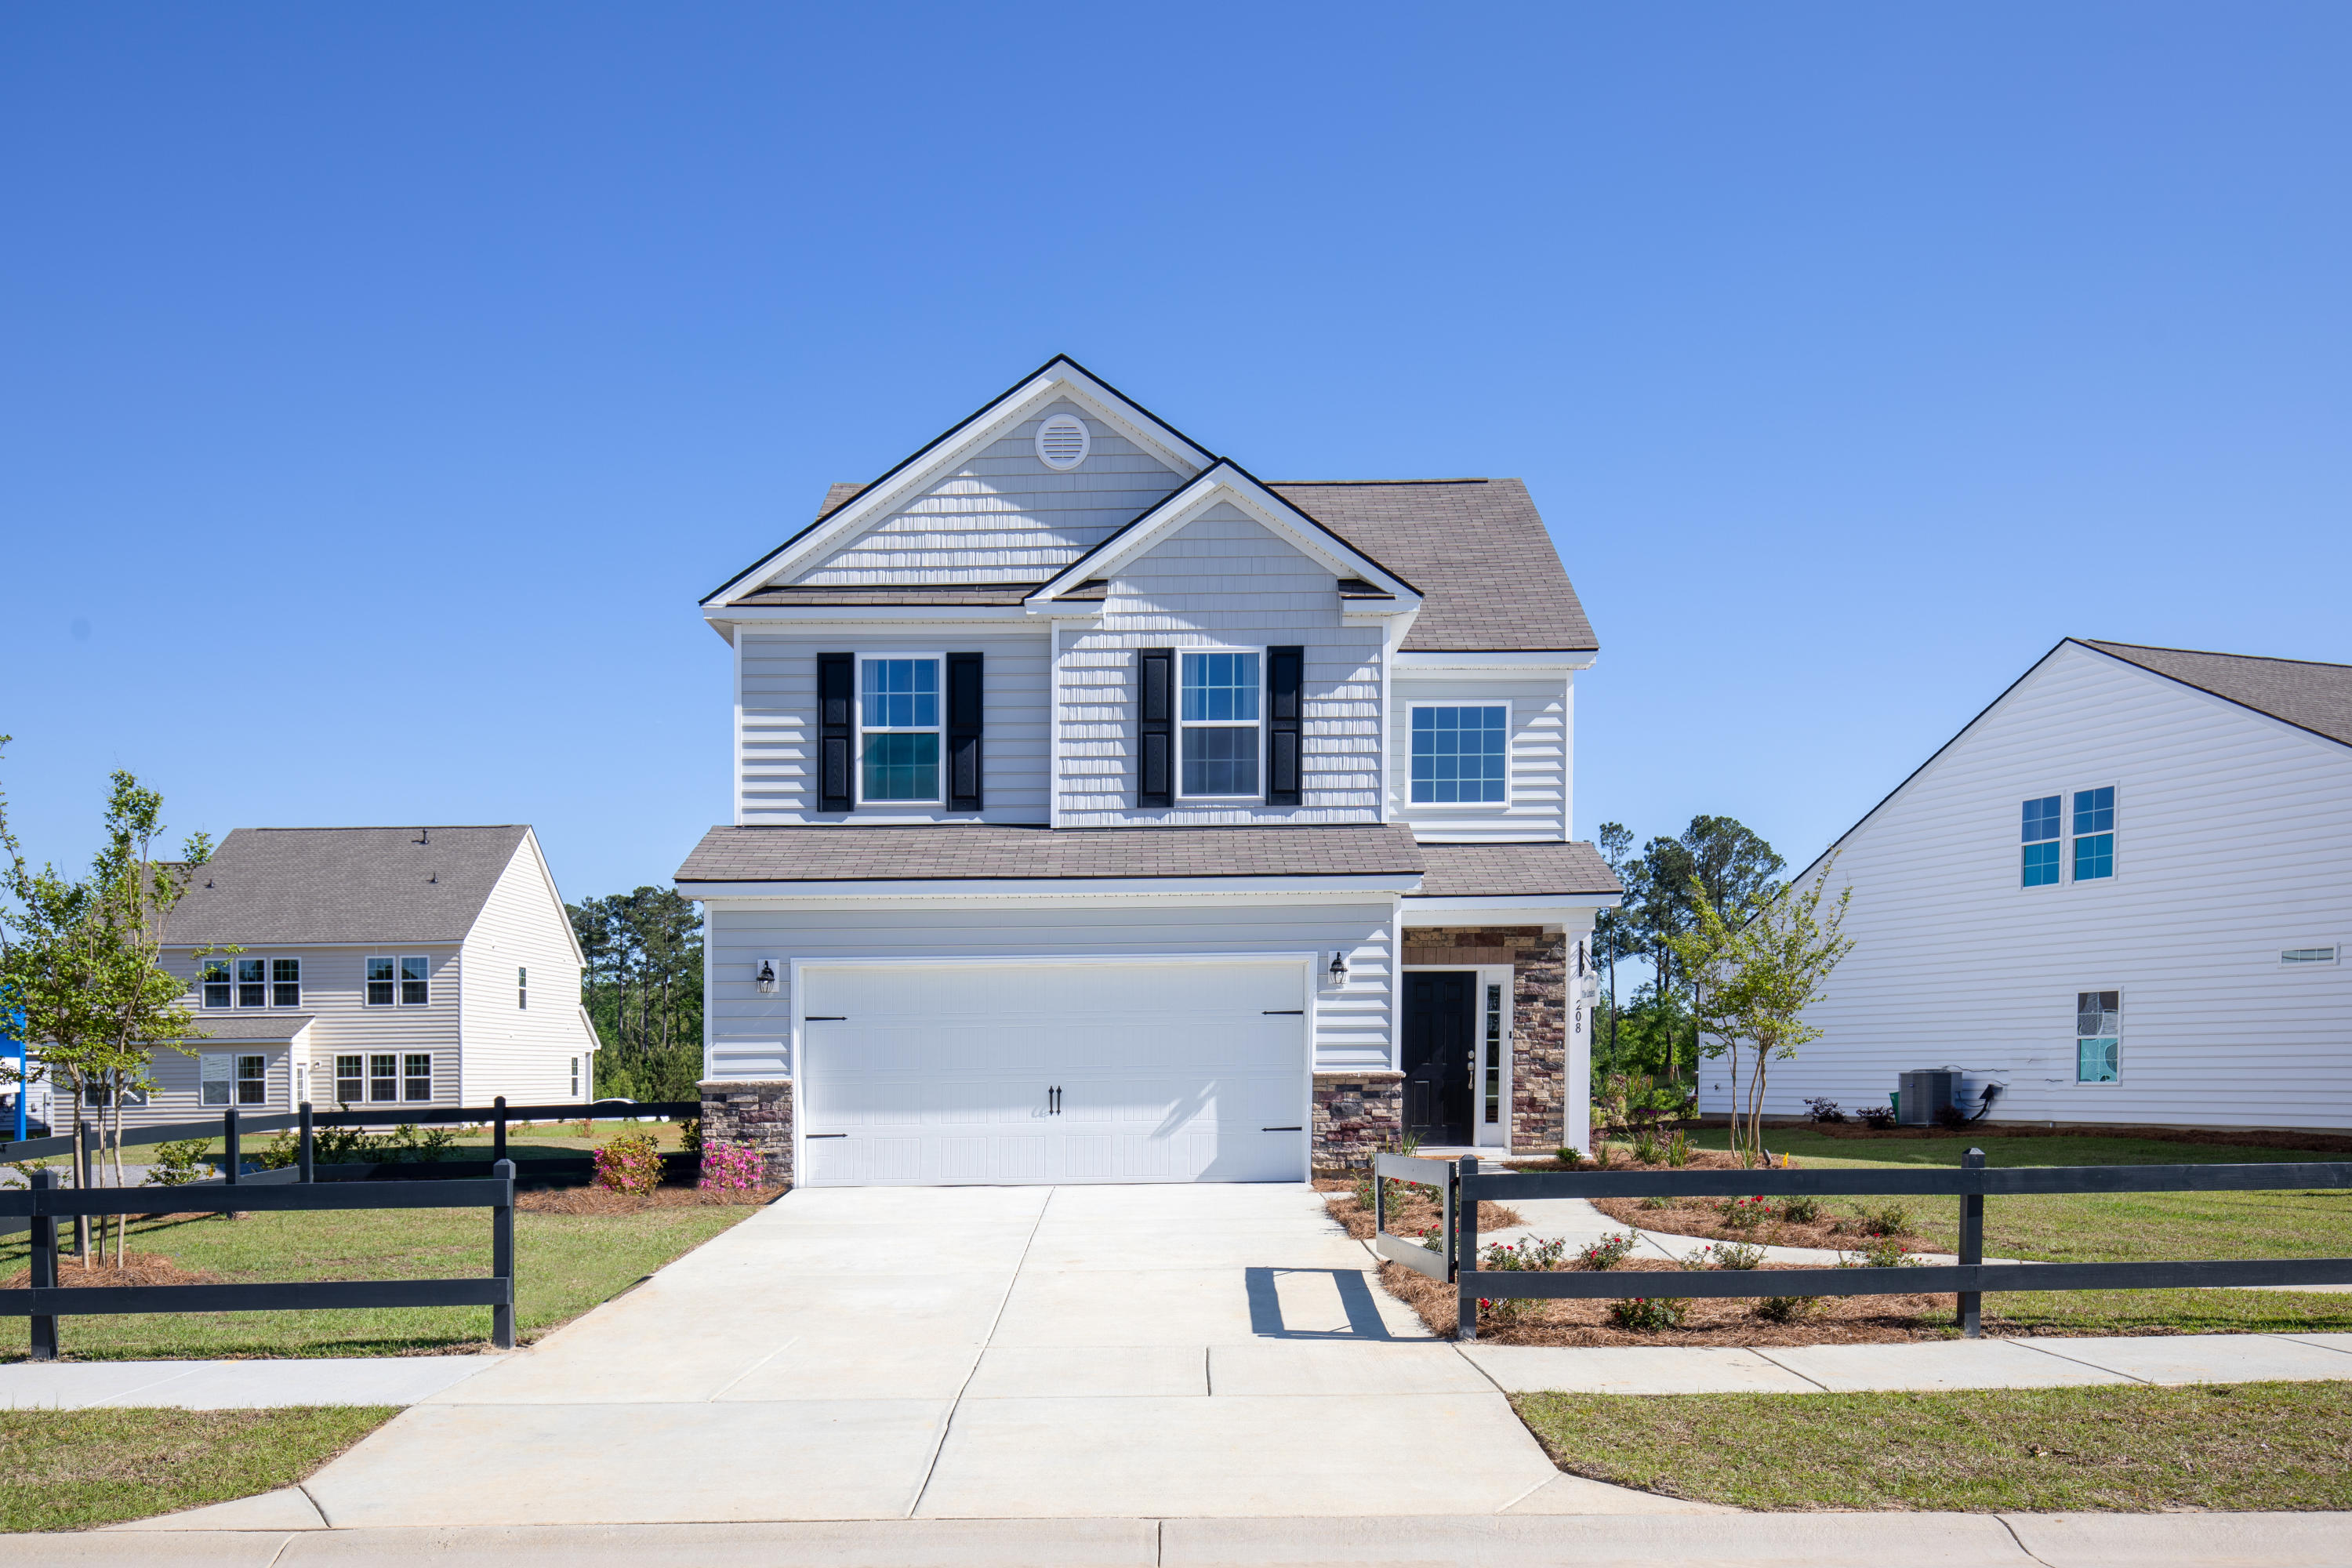 208 Chaste Tree Drive Goose Creek, SC 29445